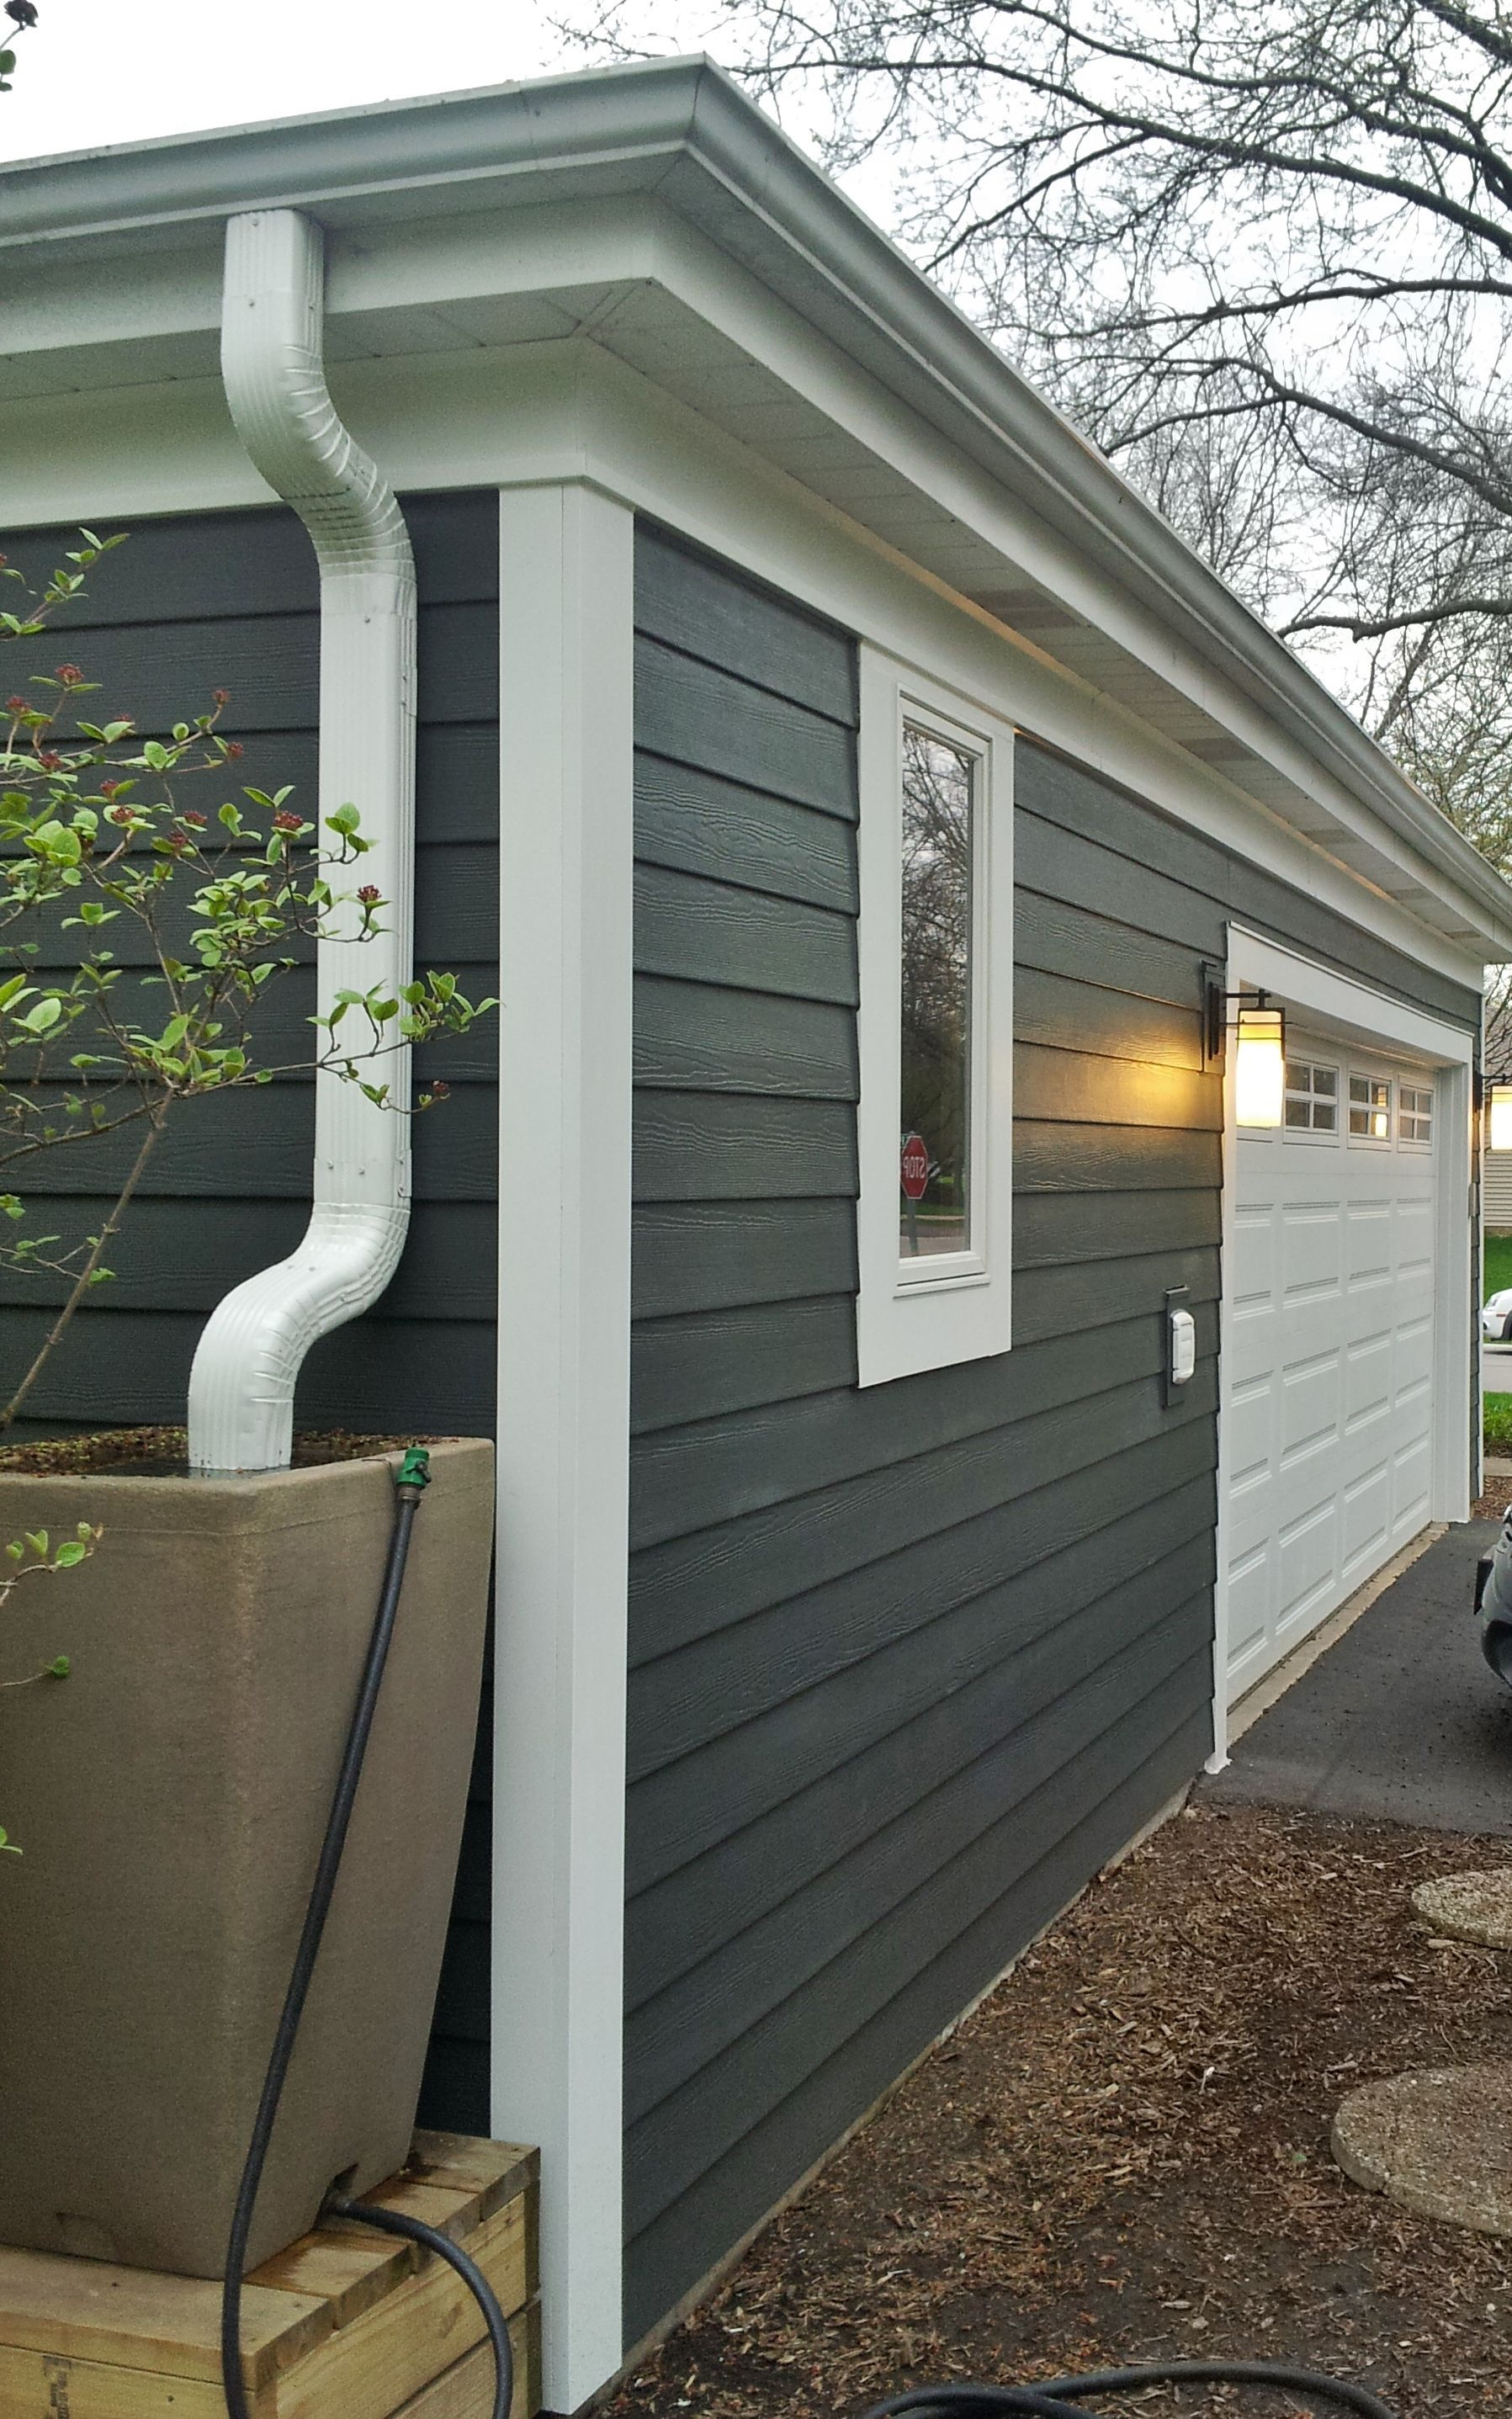 James Hardie Fiber Cement Siding Iron Gray Installed By Opal Enterprises Inc In Wheaton Il Clapboard Siding Exterior Paint Colors For House House Exterior